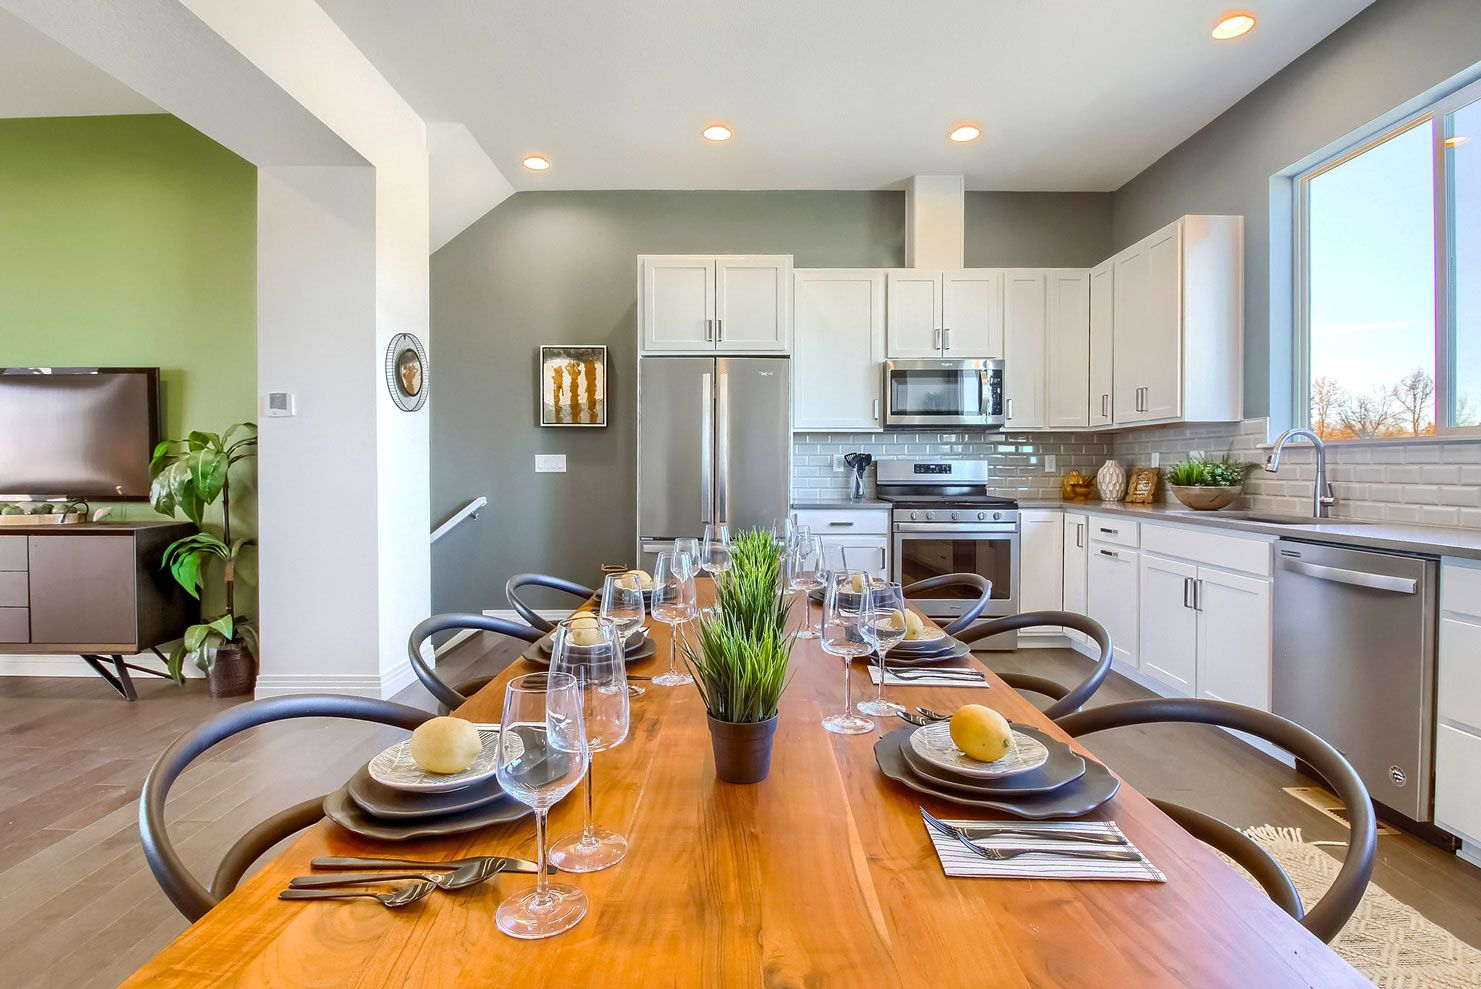 Kitchen featured in the Uptown By Thrive Home Builders in Denver, CO